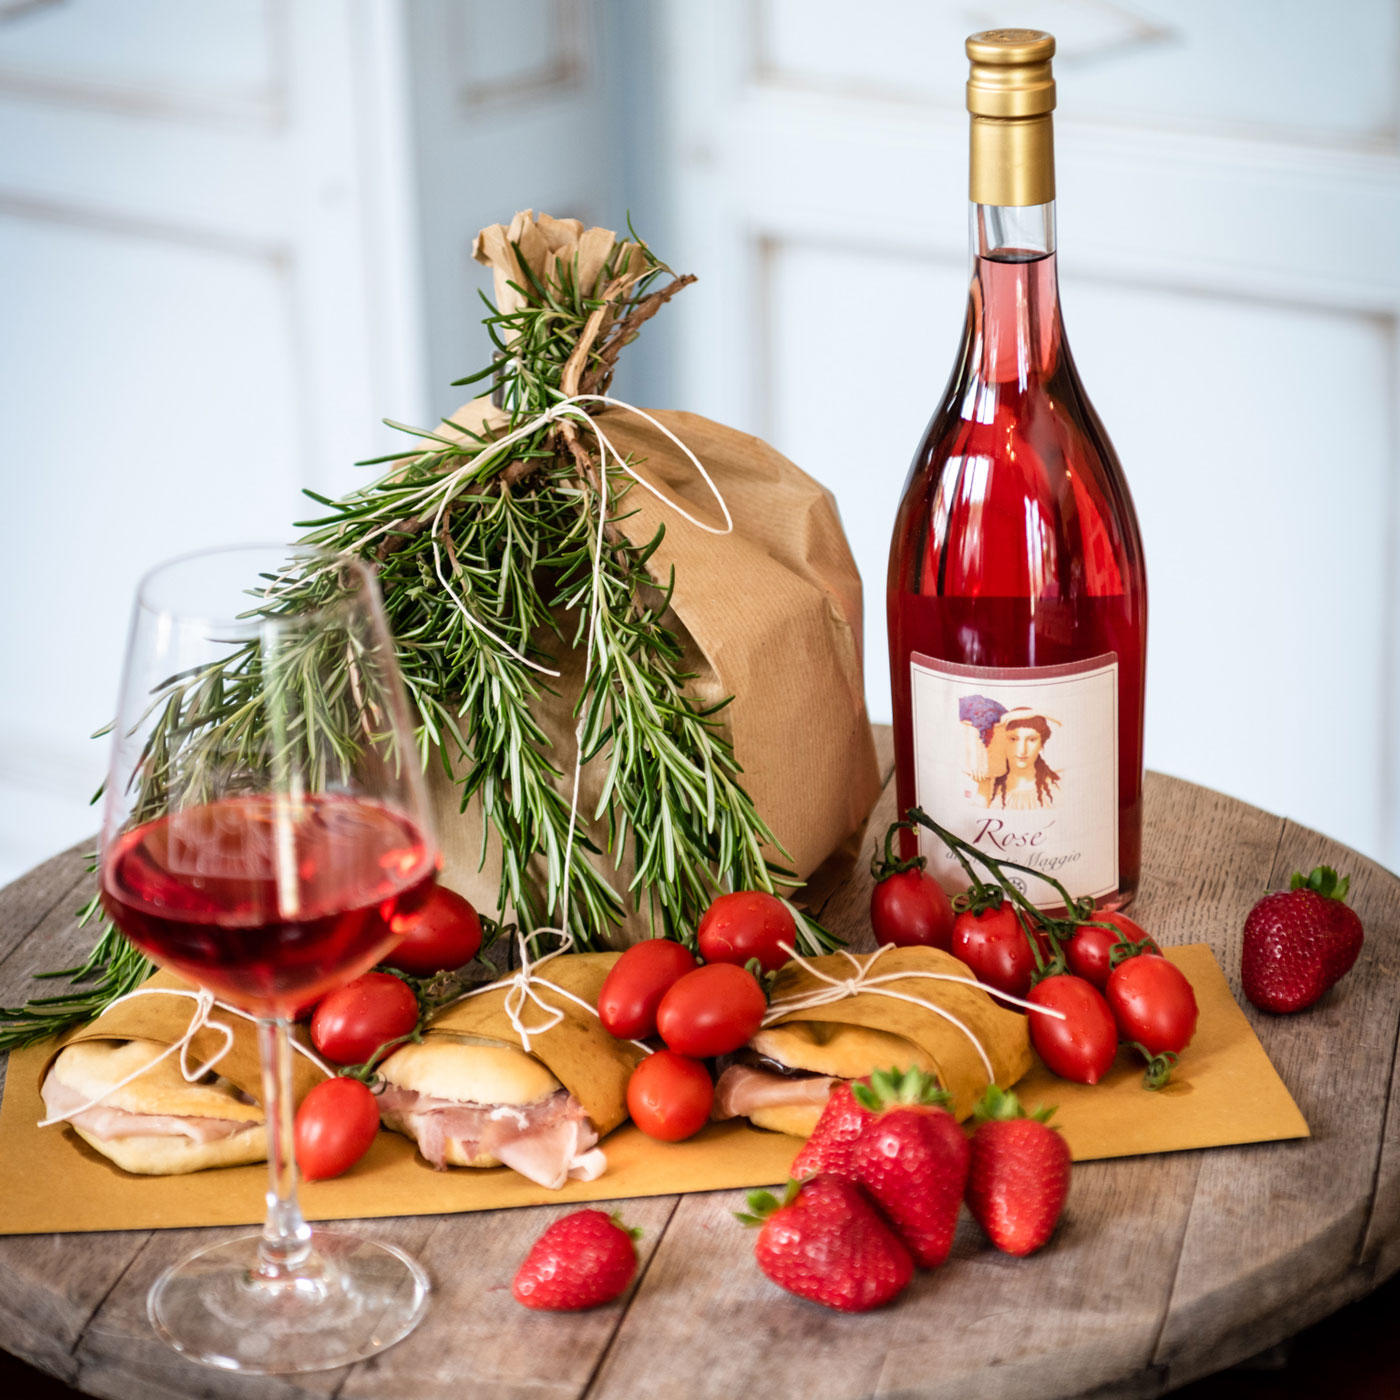 Have Rosé di Montemaggio as an aperitif - order yours today